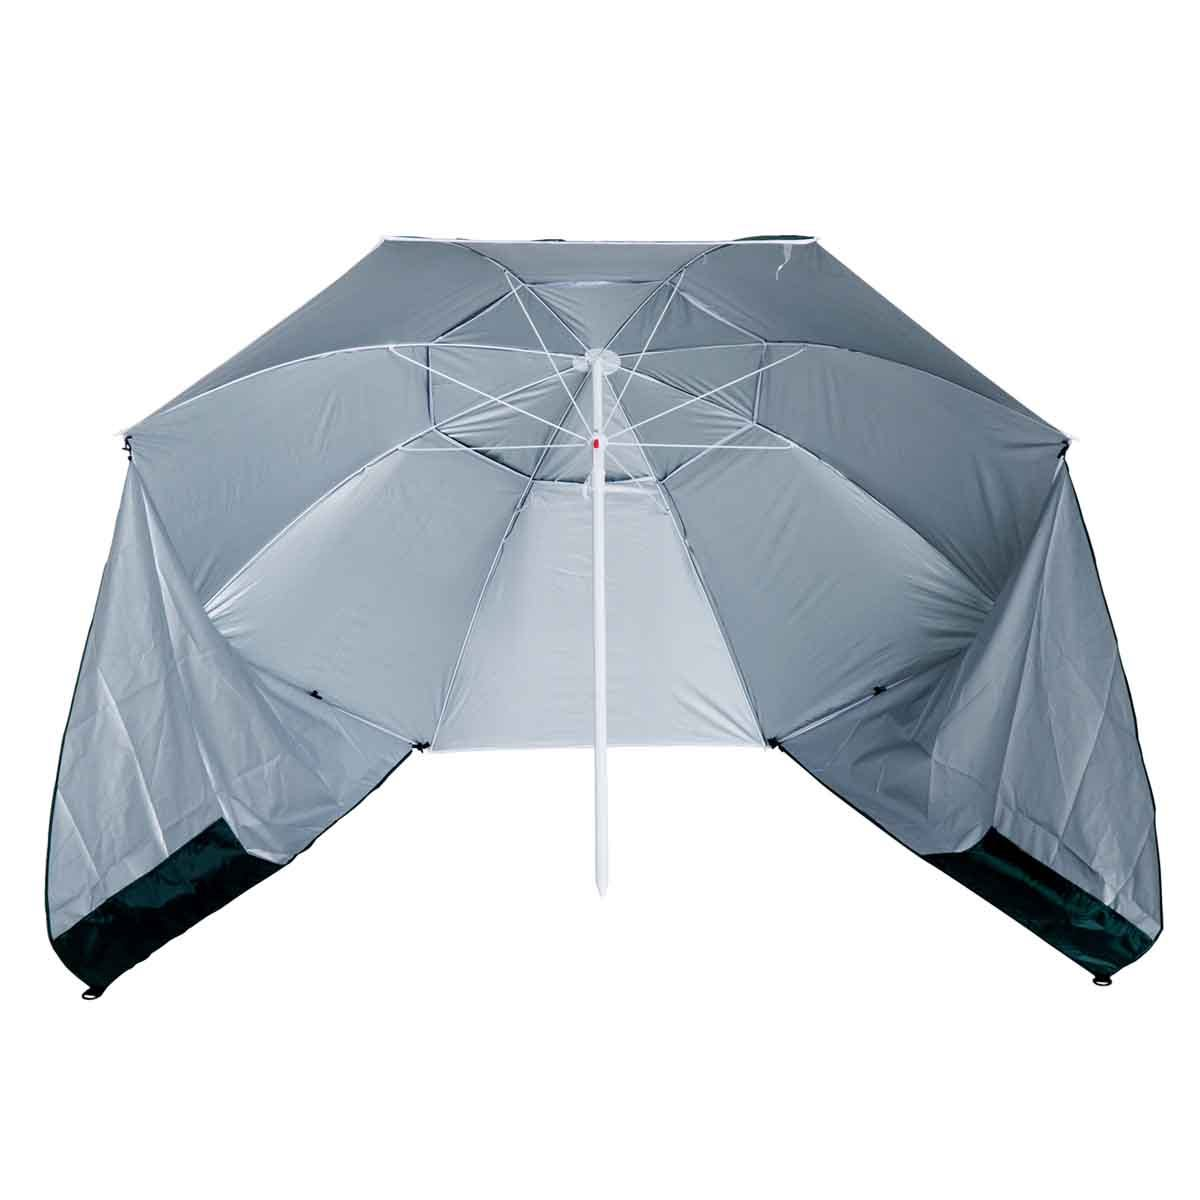 Outsunny 2 in 1 Beach Parasol Canopy (base not included) - Green